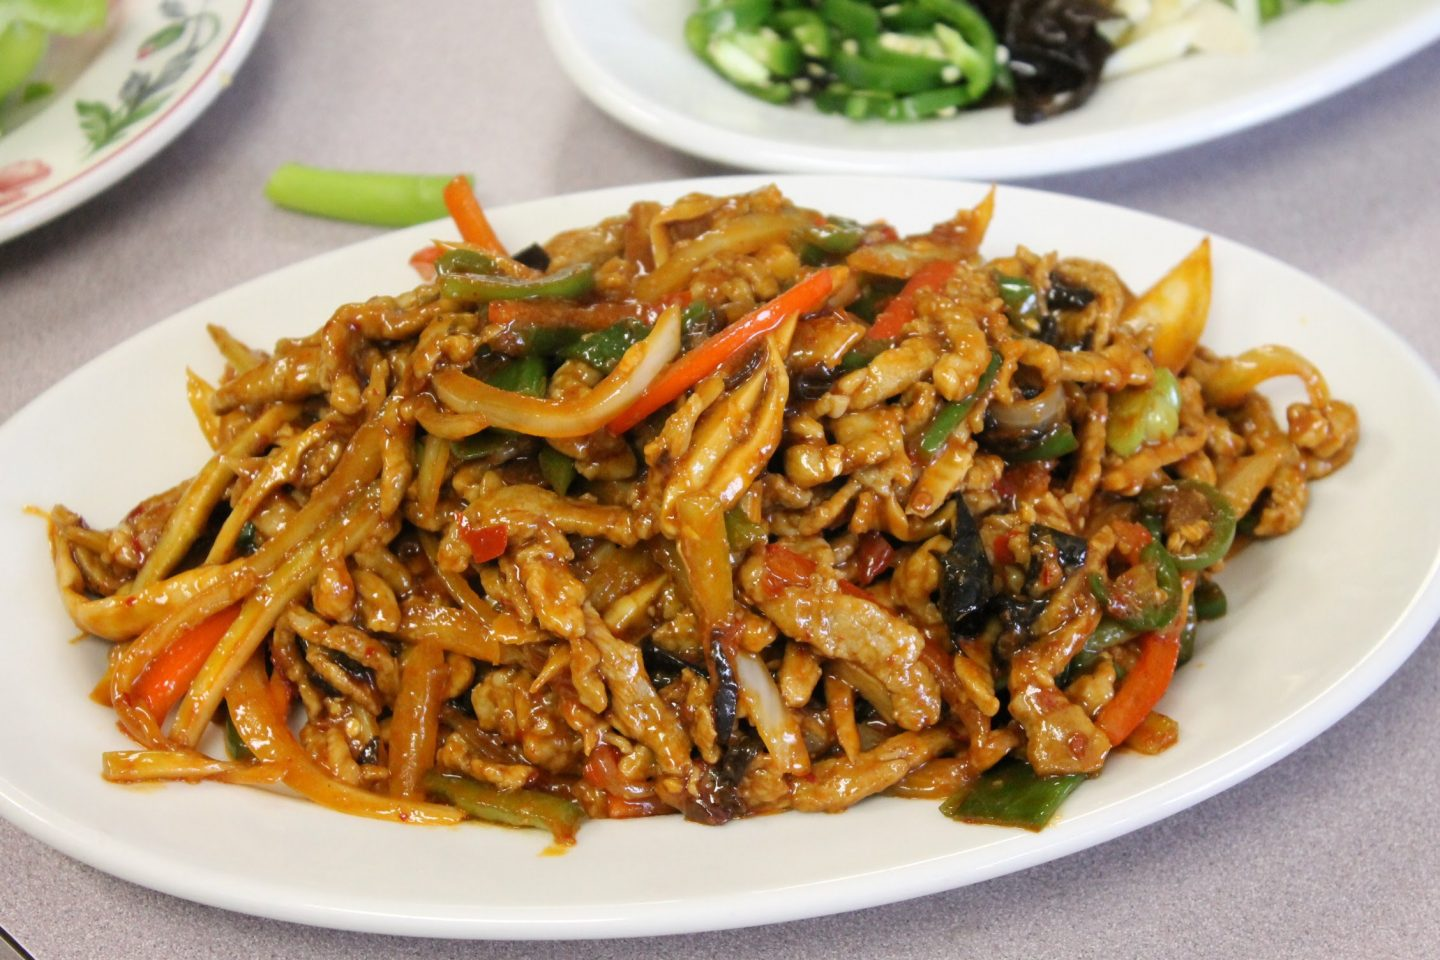 Plate filled with asian noodle dish